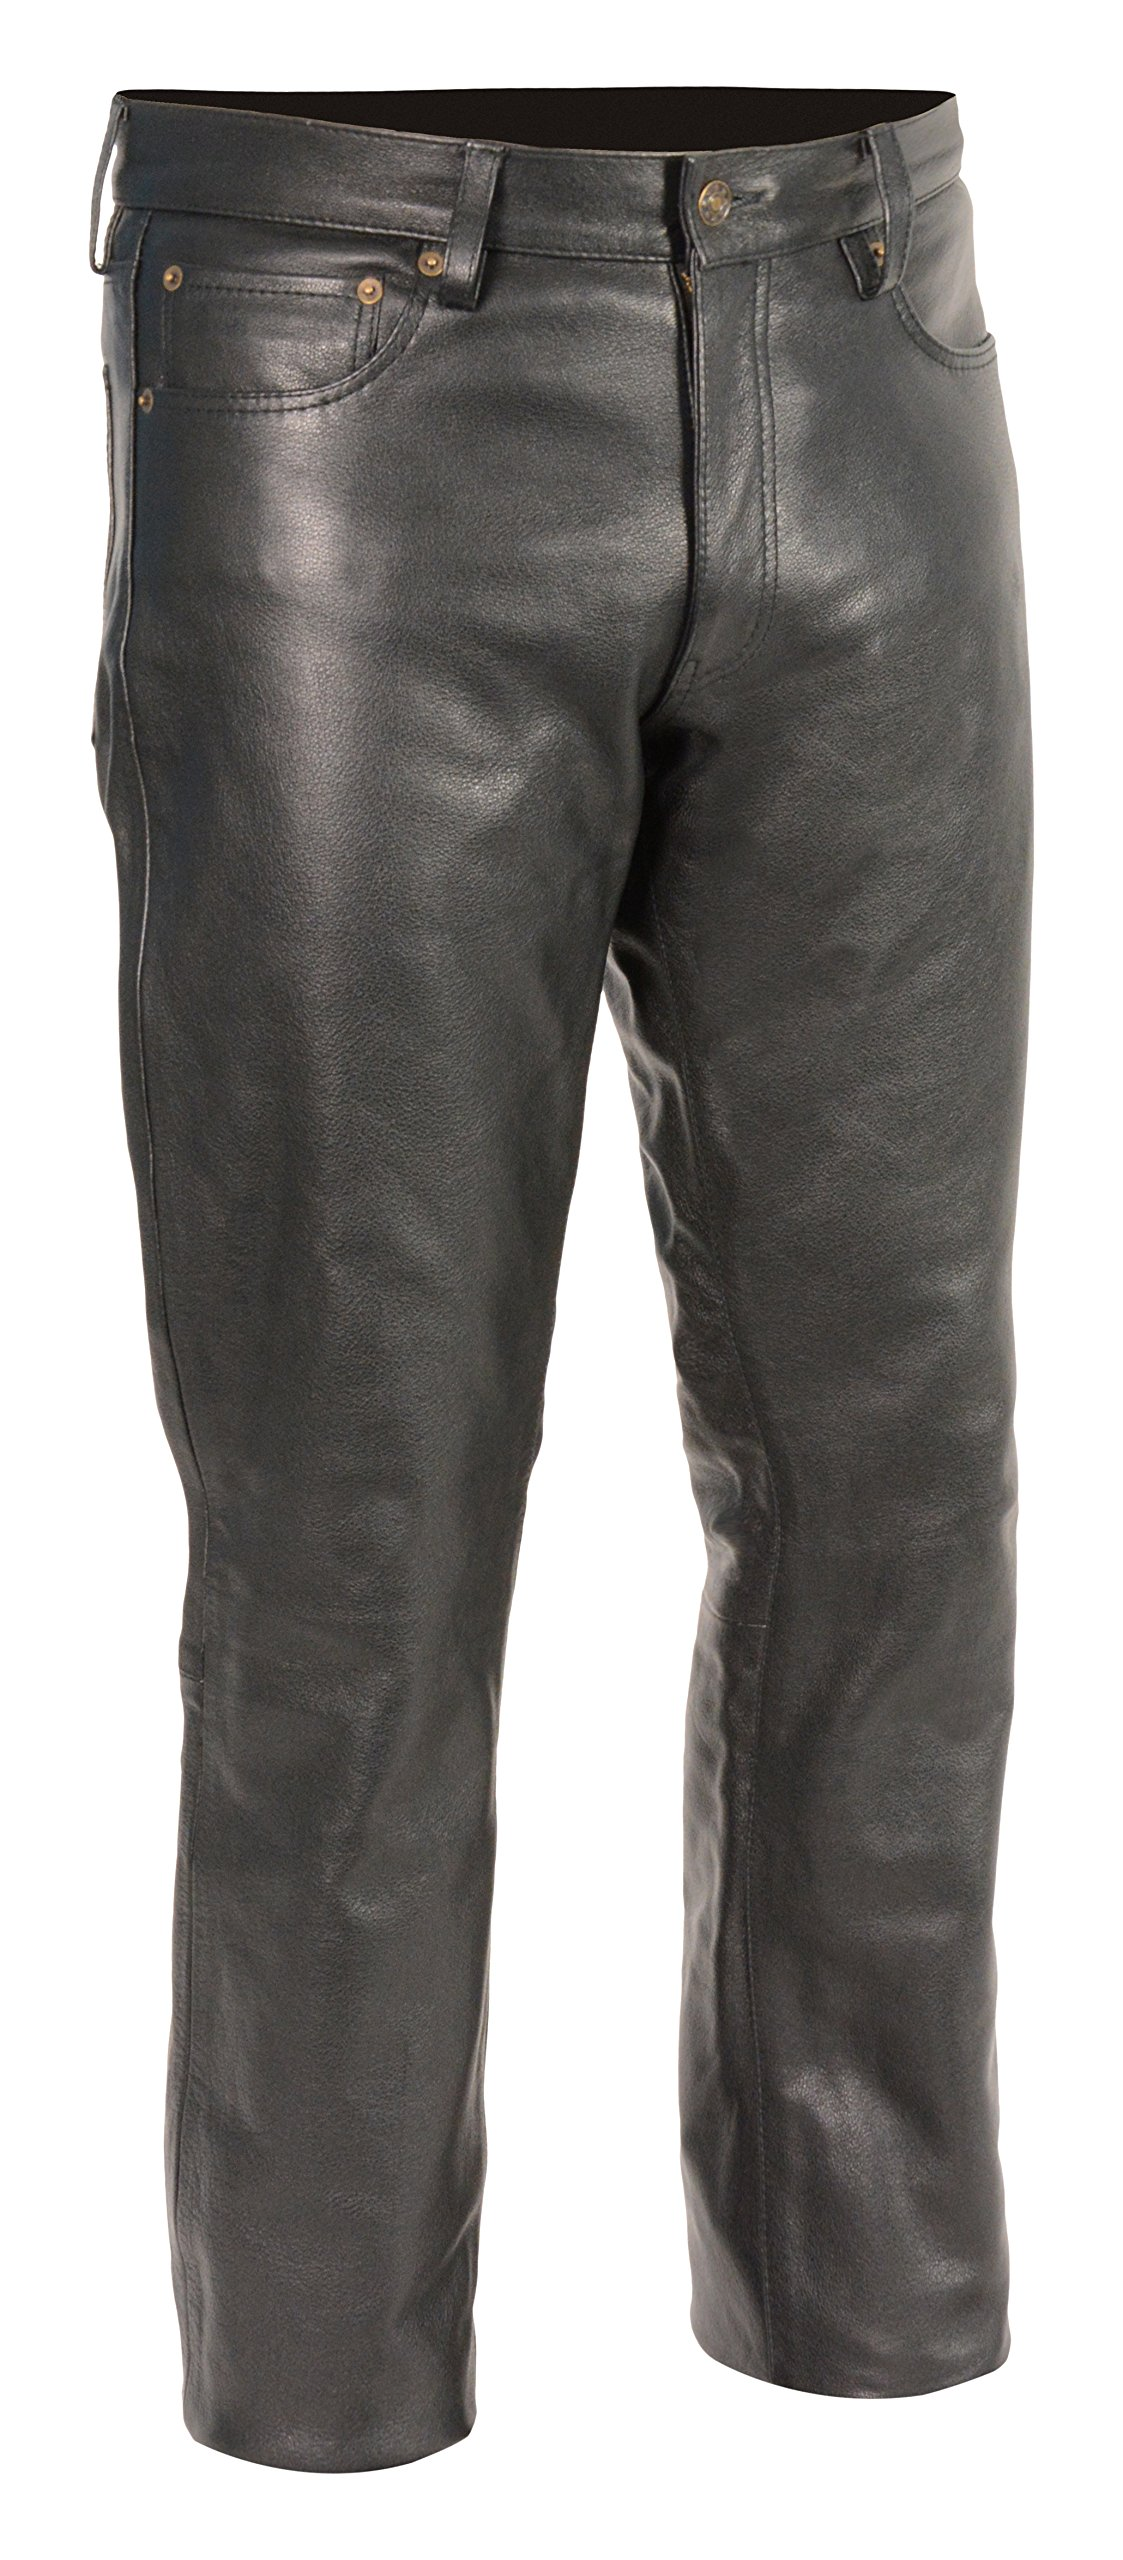 Milwaukee Leather Men's Premium Leather Pants (Black, Size 42) (S) by Milwaukee Leather